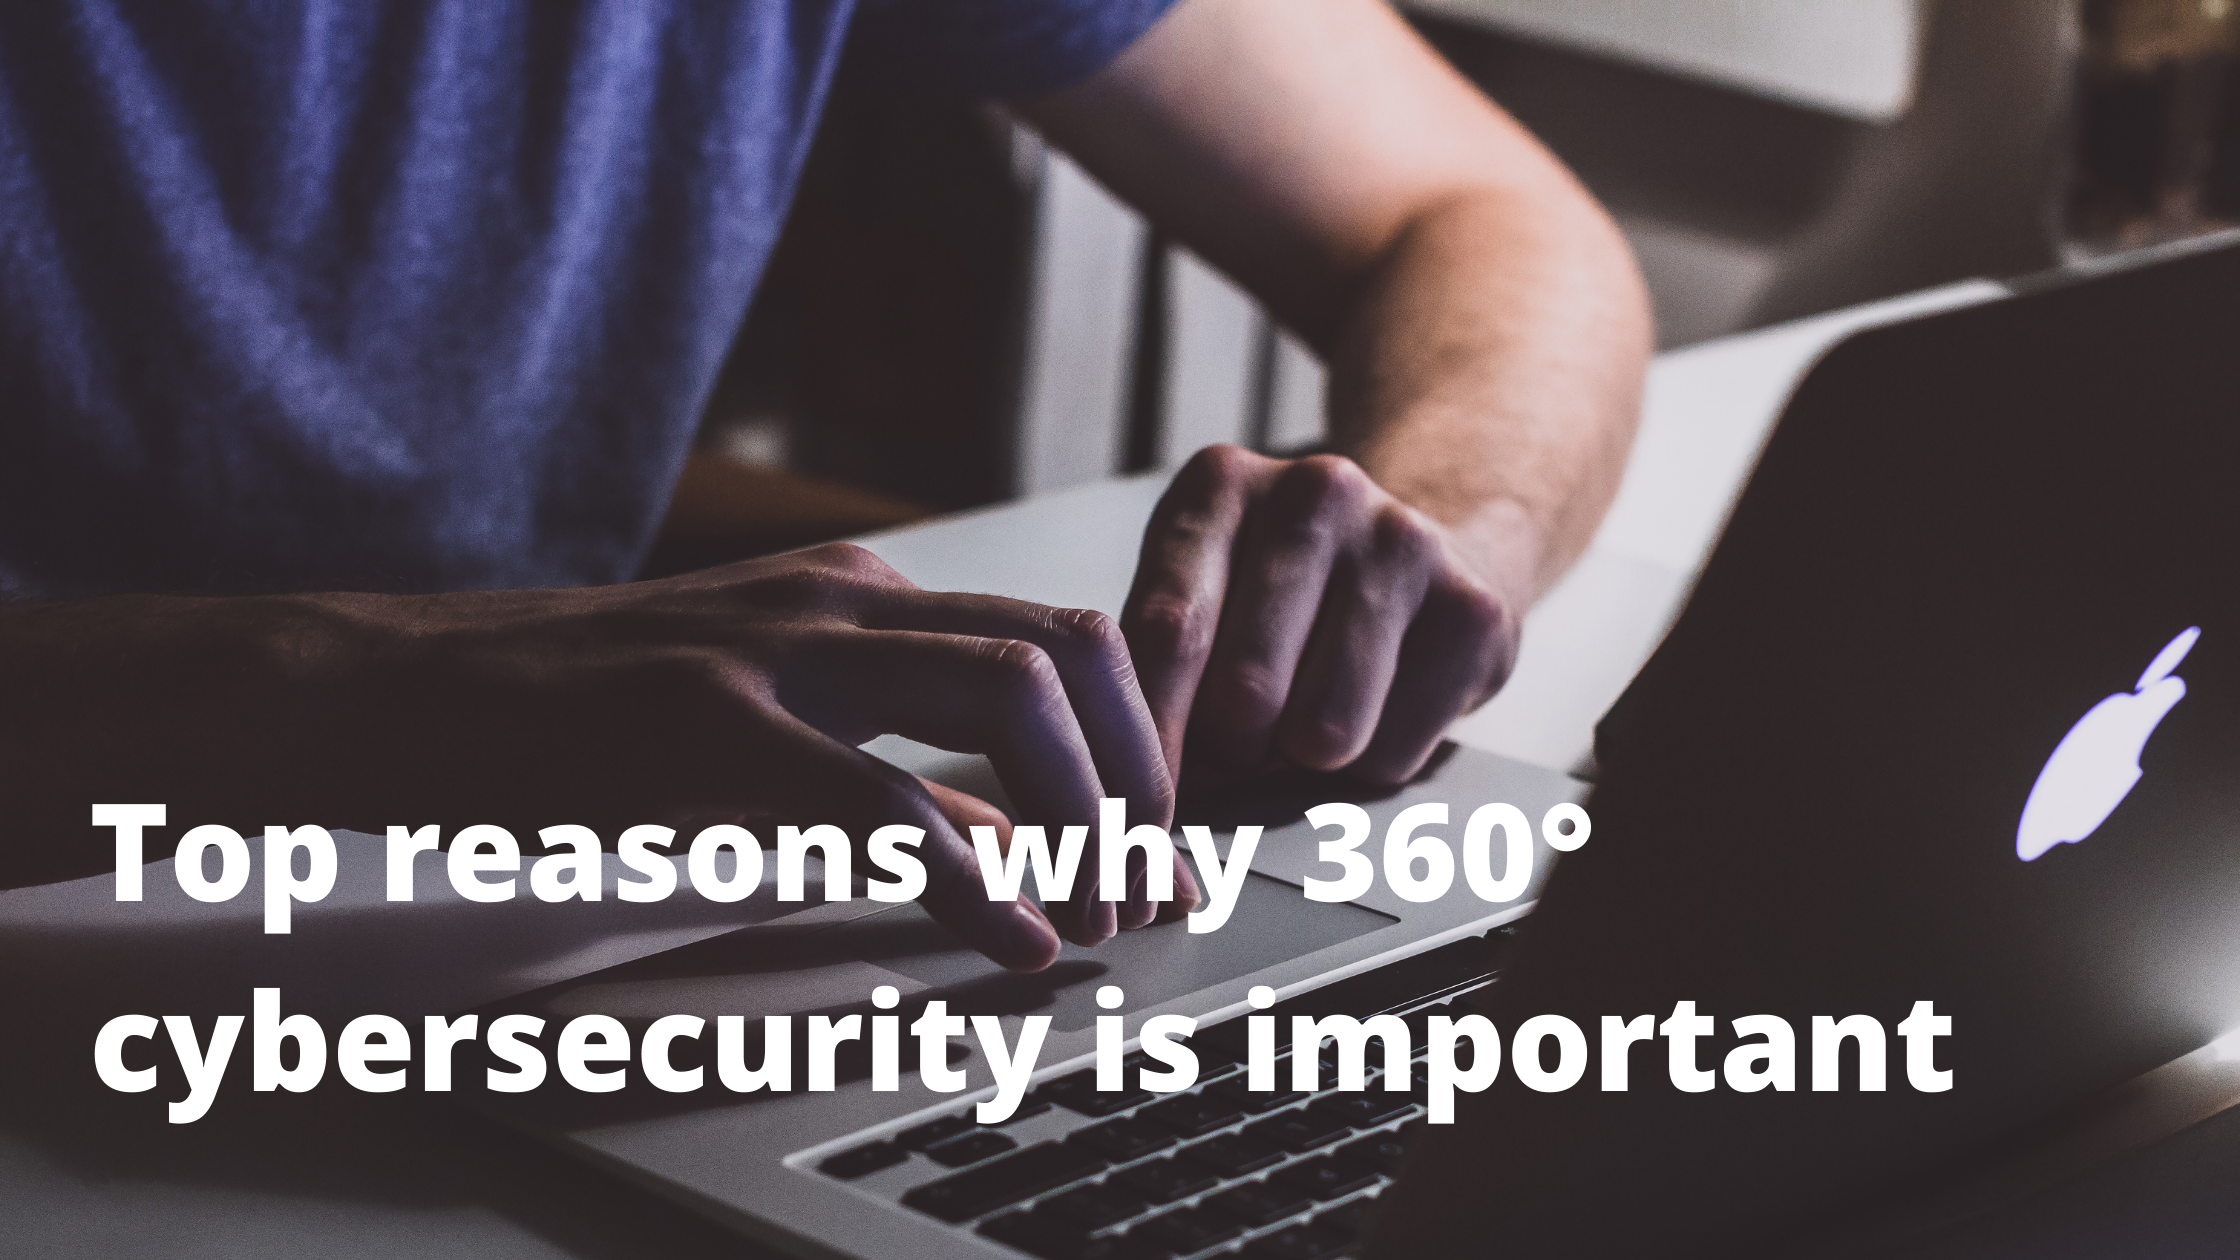 Top reasons why 360° cybersecurity is important for your business